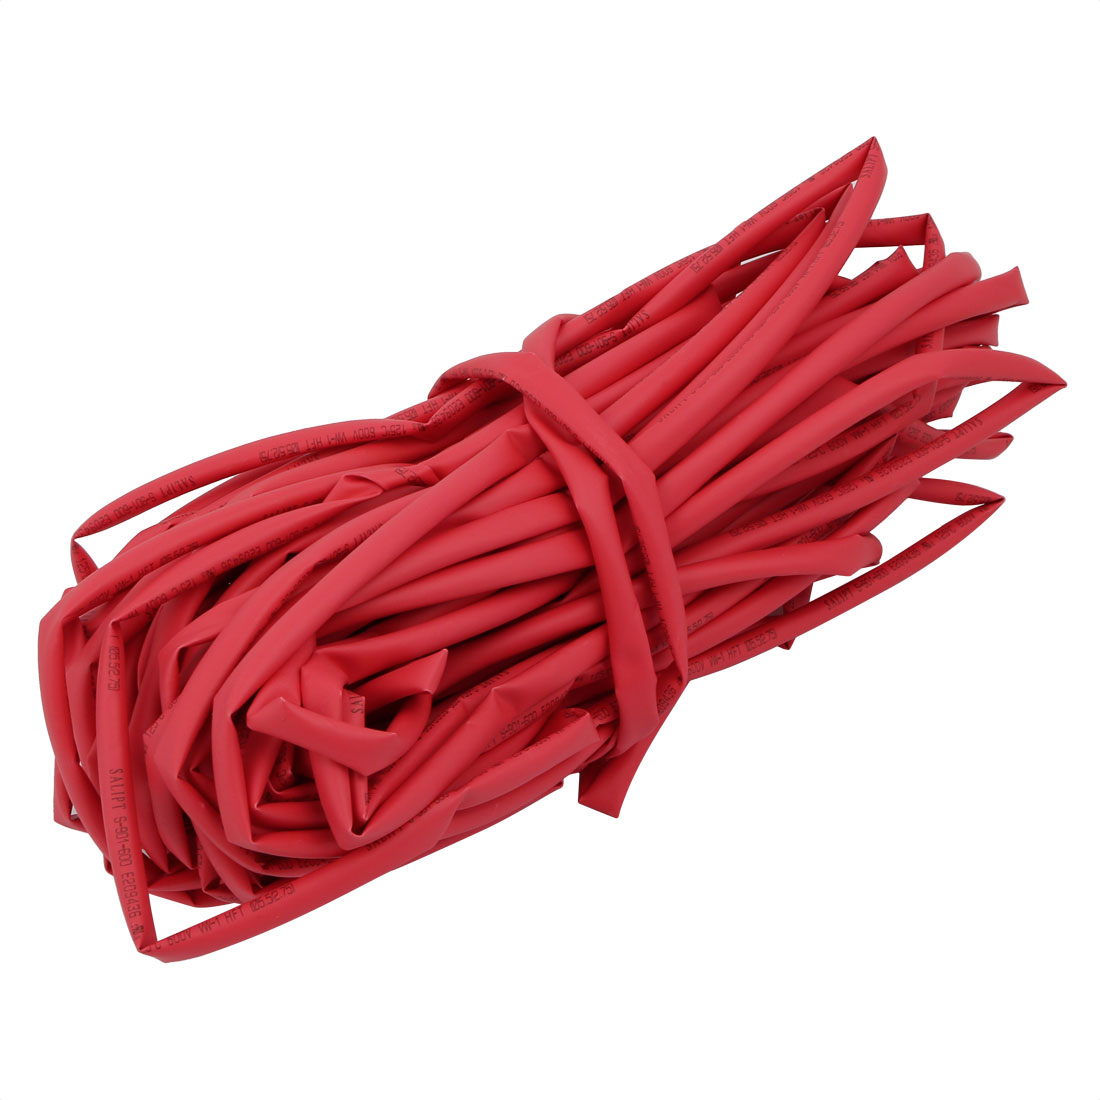 65.6Ft Length 5.5mm Inner Dia Insulated Heat Shrink Tube Sleeve Wire Wrap Red